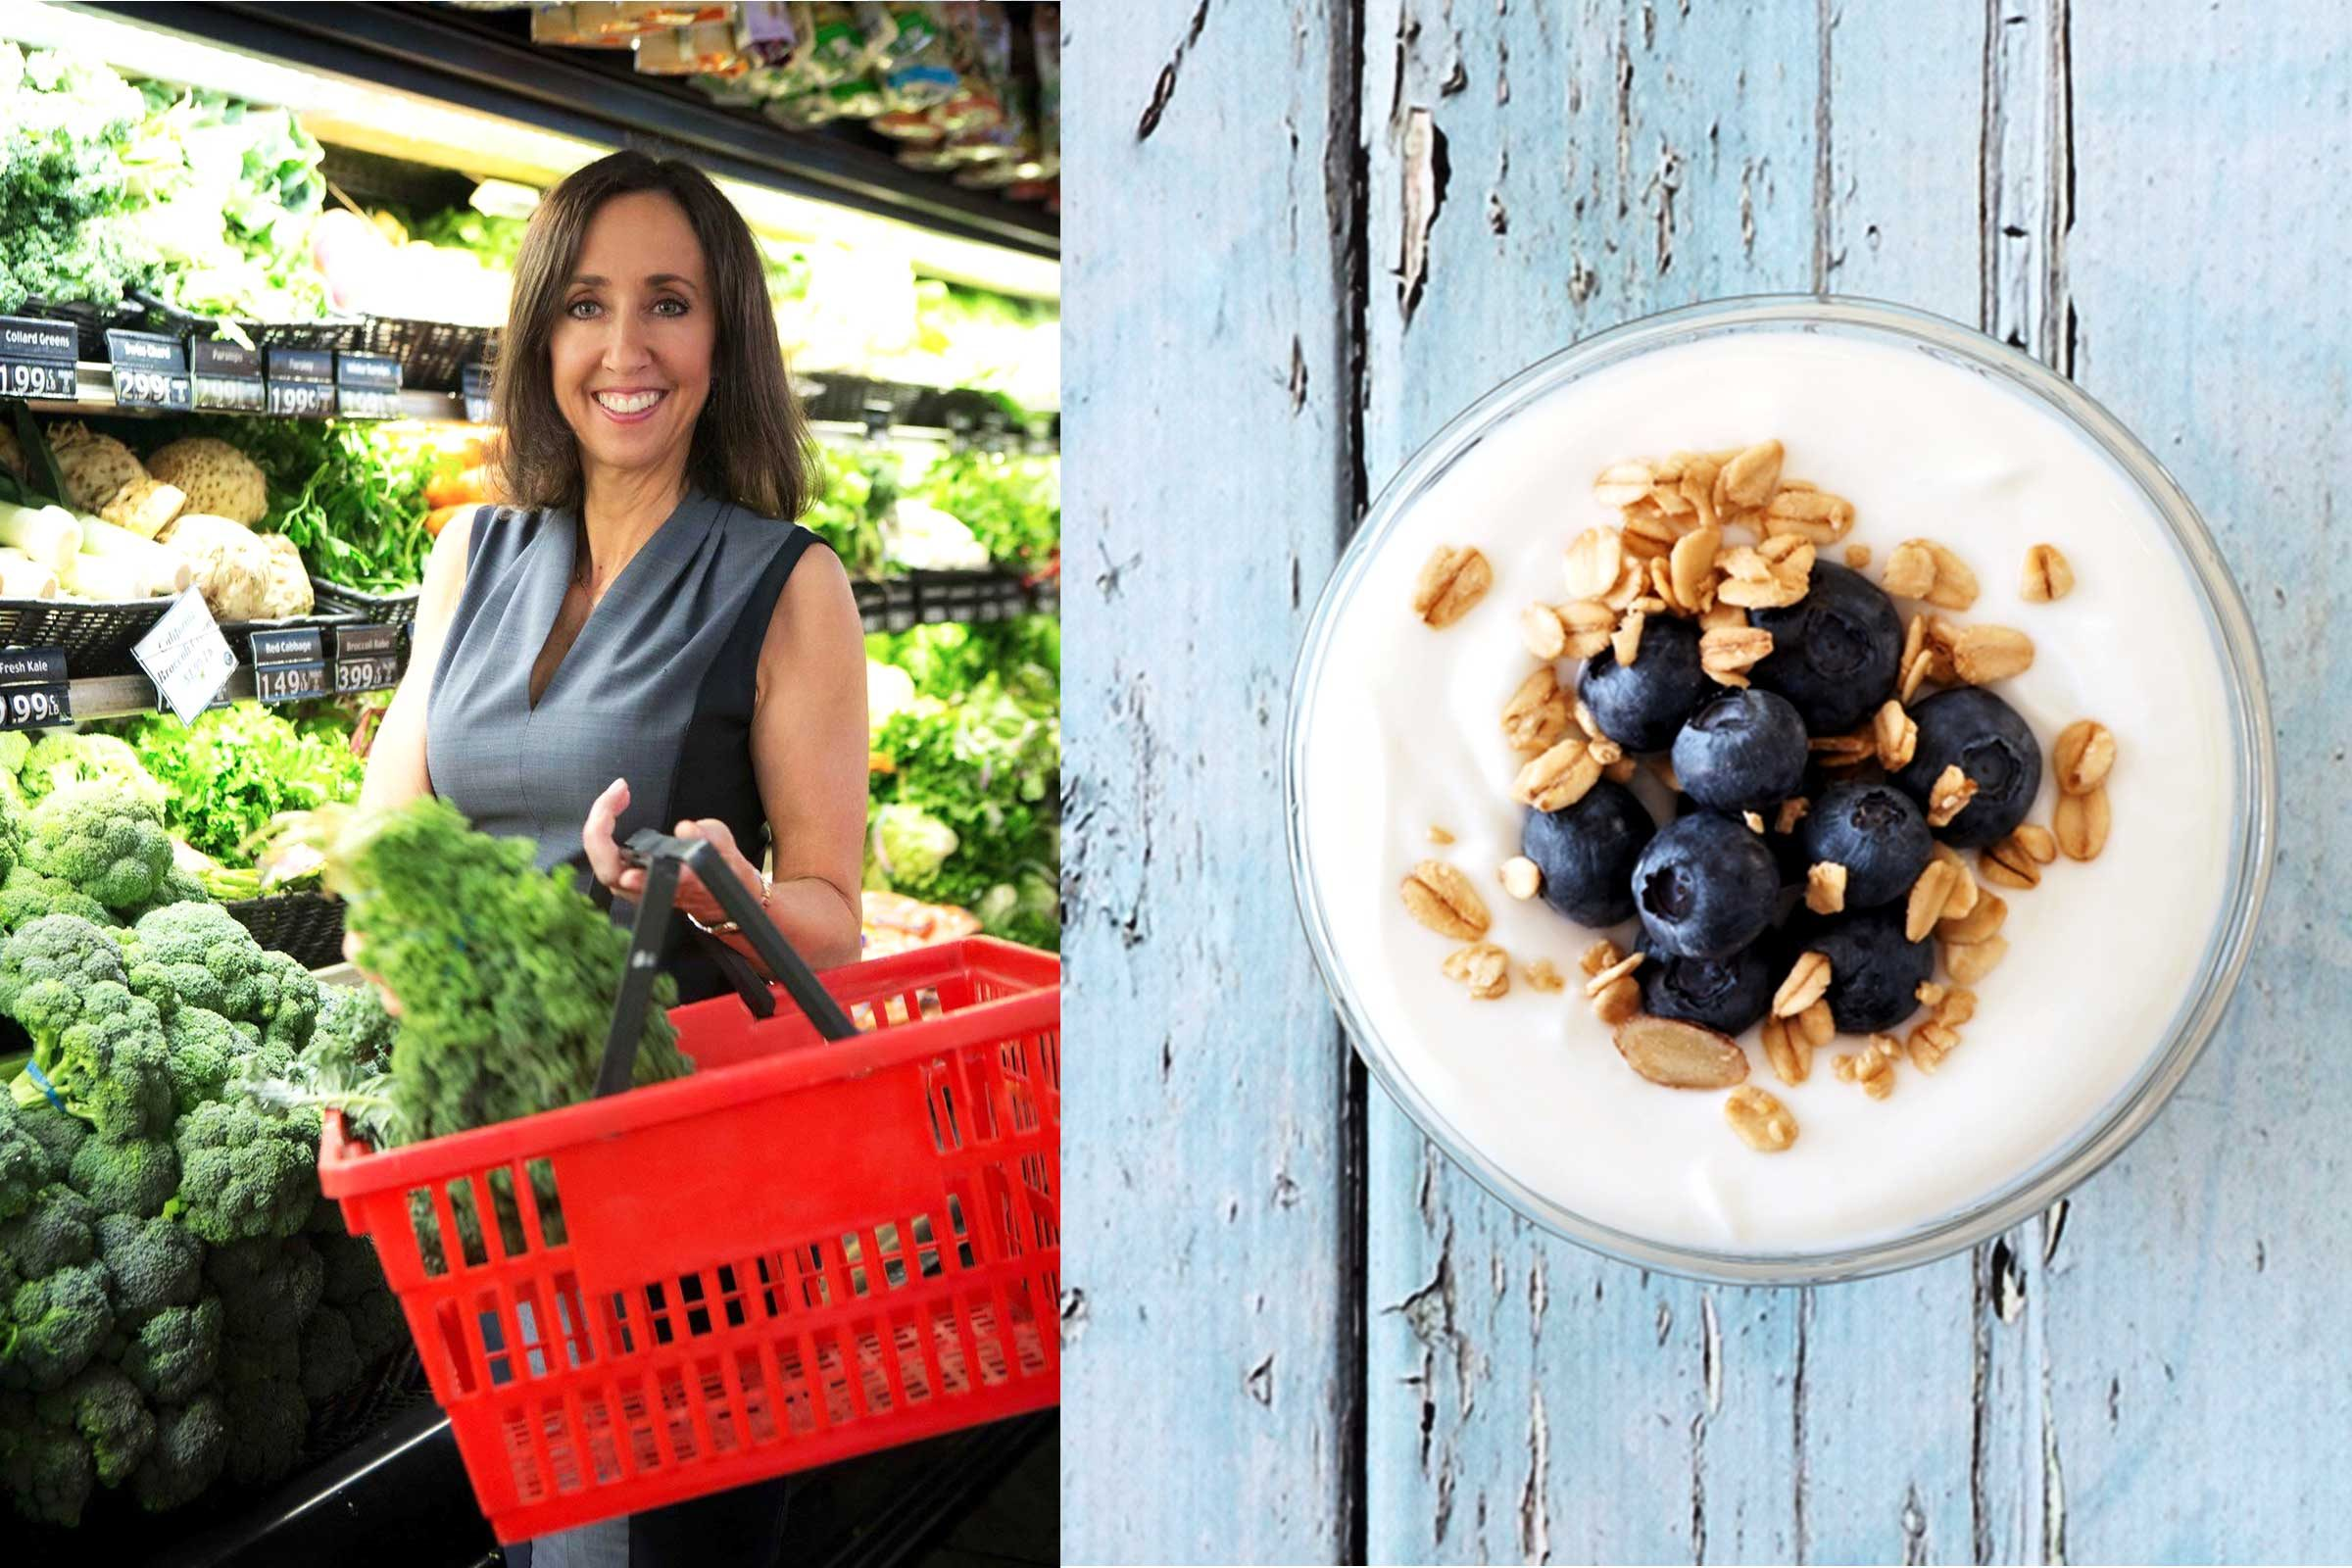 Martha McKittrick and a bowl of yogurt with granola and blueberries